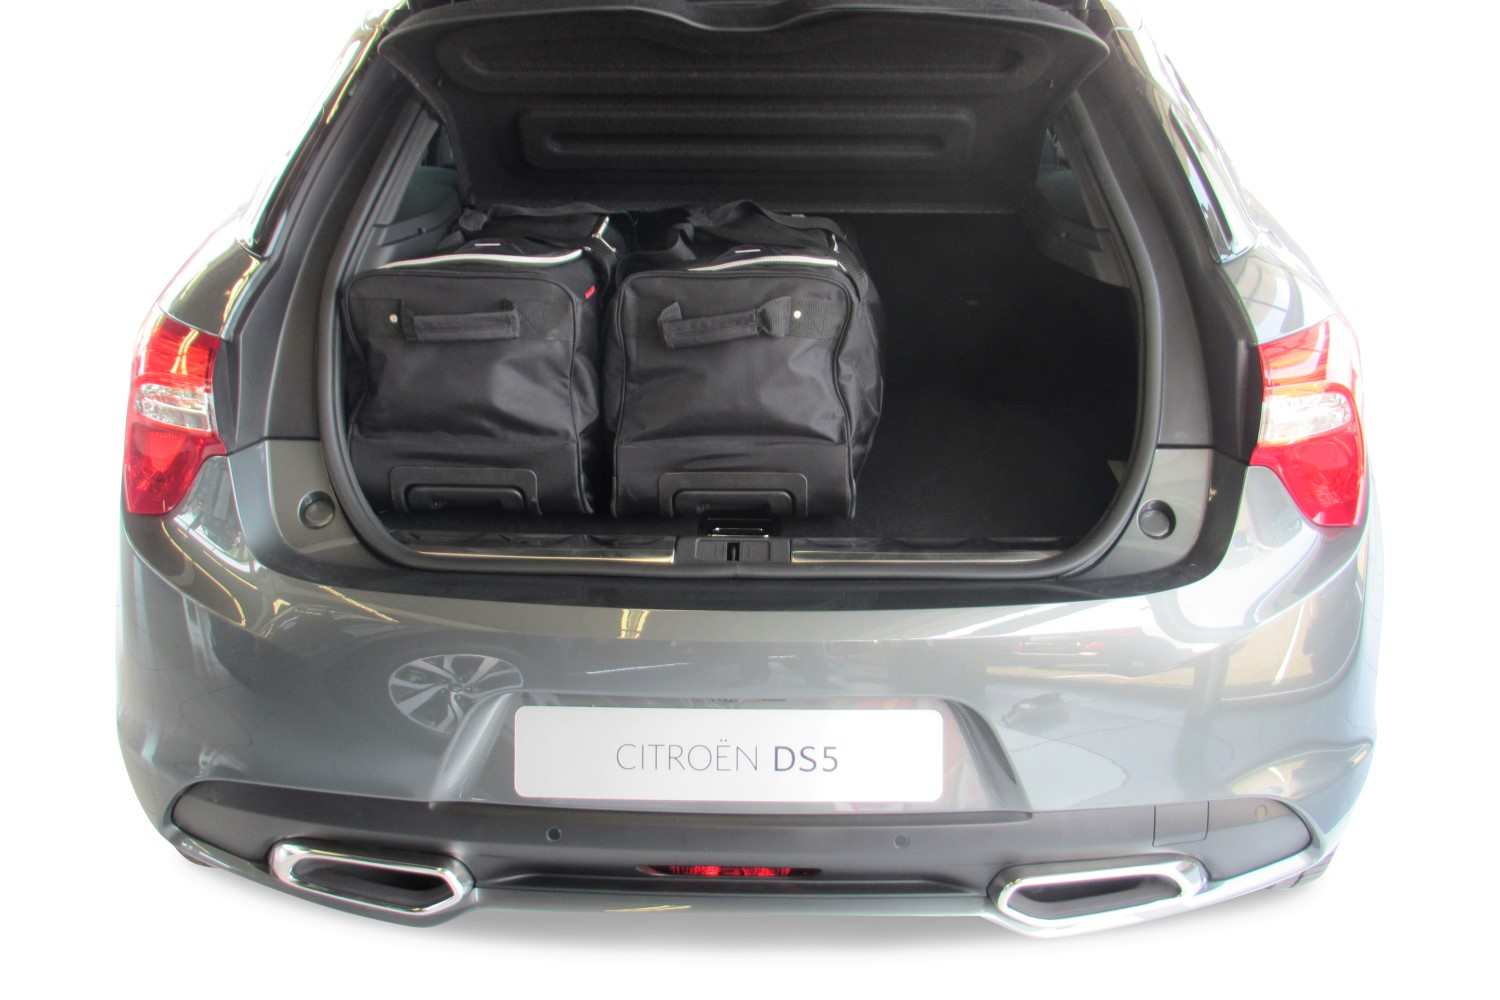 ds5 citro n ds5 hybrid4 2012 present 5d car bags travel bags. Black Bedroom Furniture Sets. Home Design Ideas